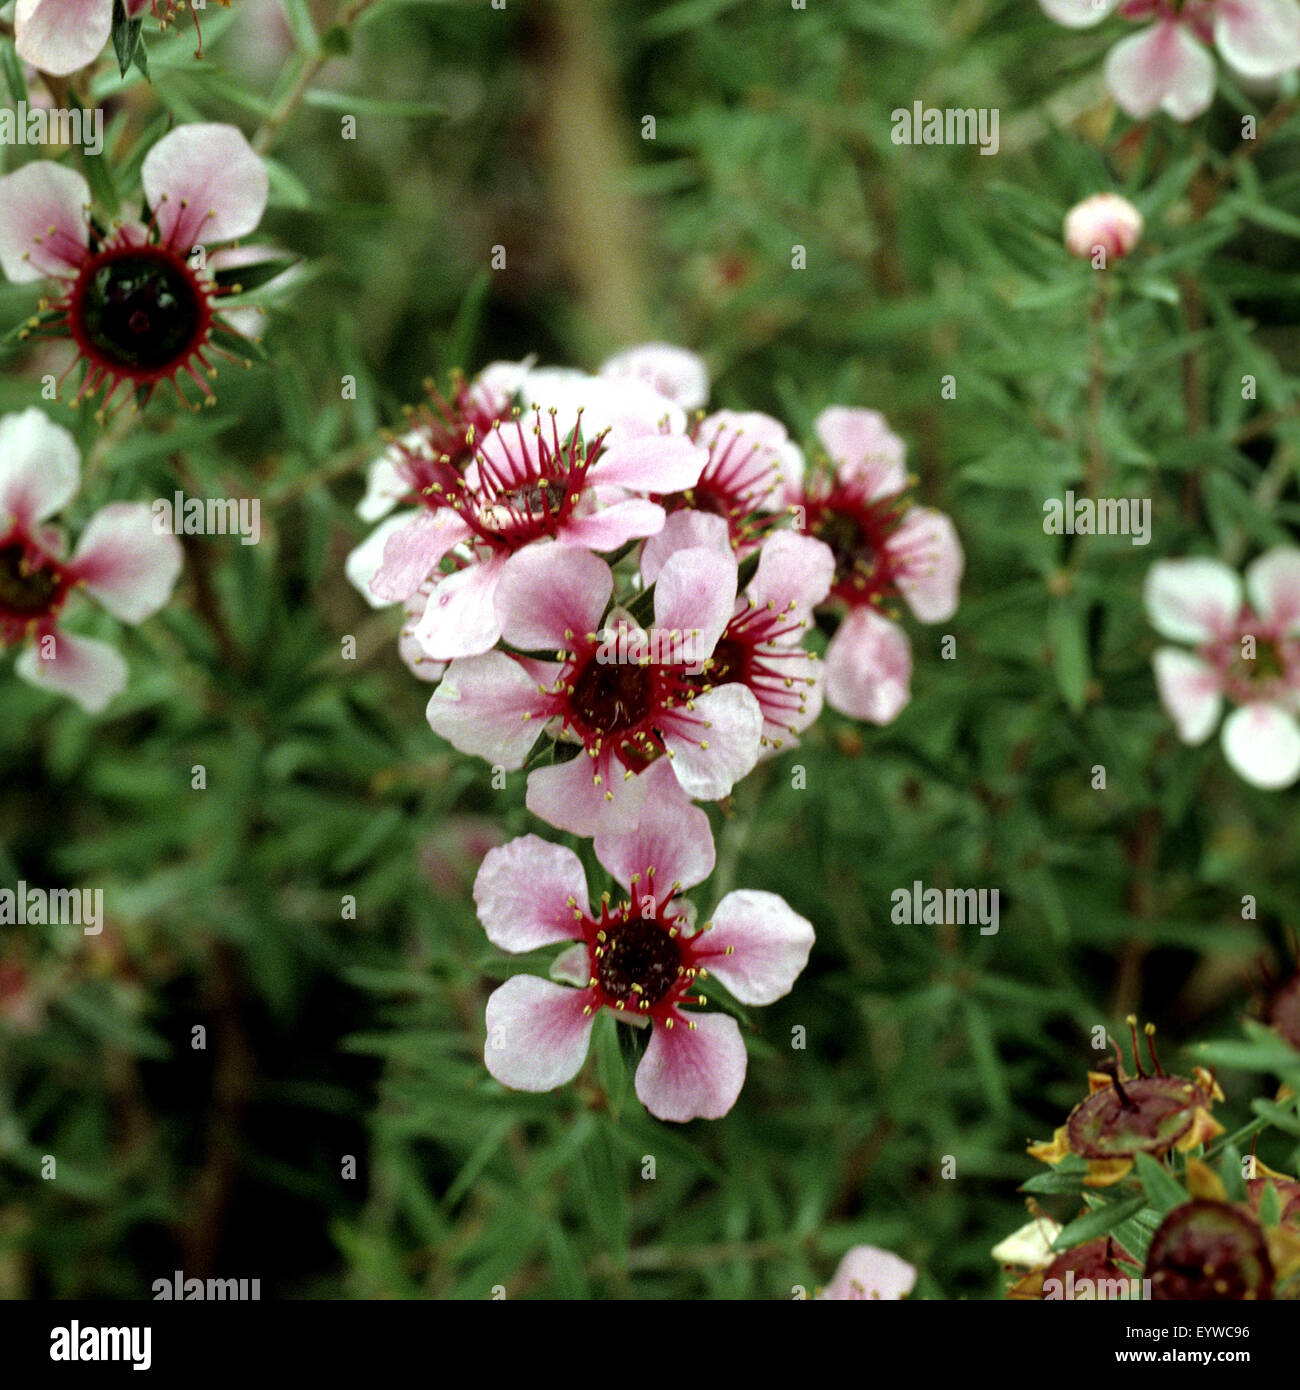 Rosenmyrte, Leptospermum scoparium, Teebaum, Teebaum in Neuseeland Stock Photo